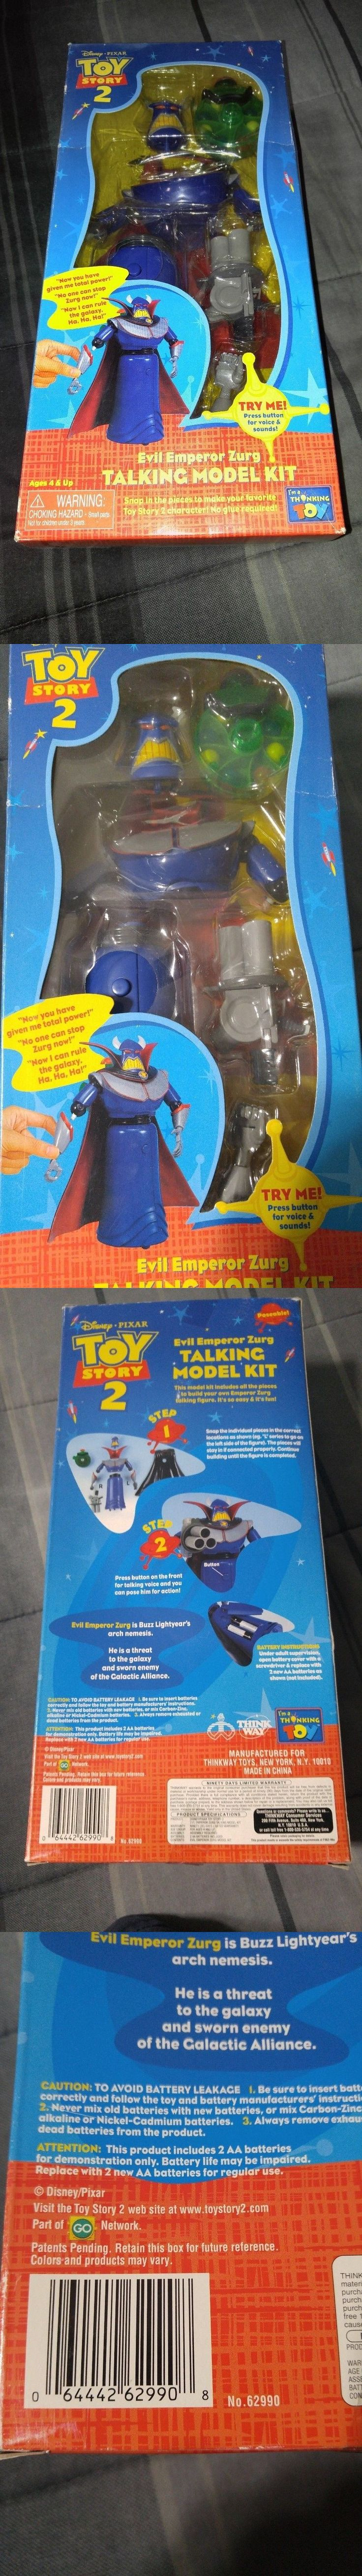 Toy Story 19223: Disney Pixar Toy Story 2 Evil Emperor Zurg Talking Model Kit Nib #62990 -> BUY IT NOW ONLY: $64.99 on eBay!